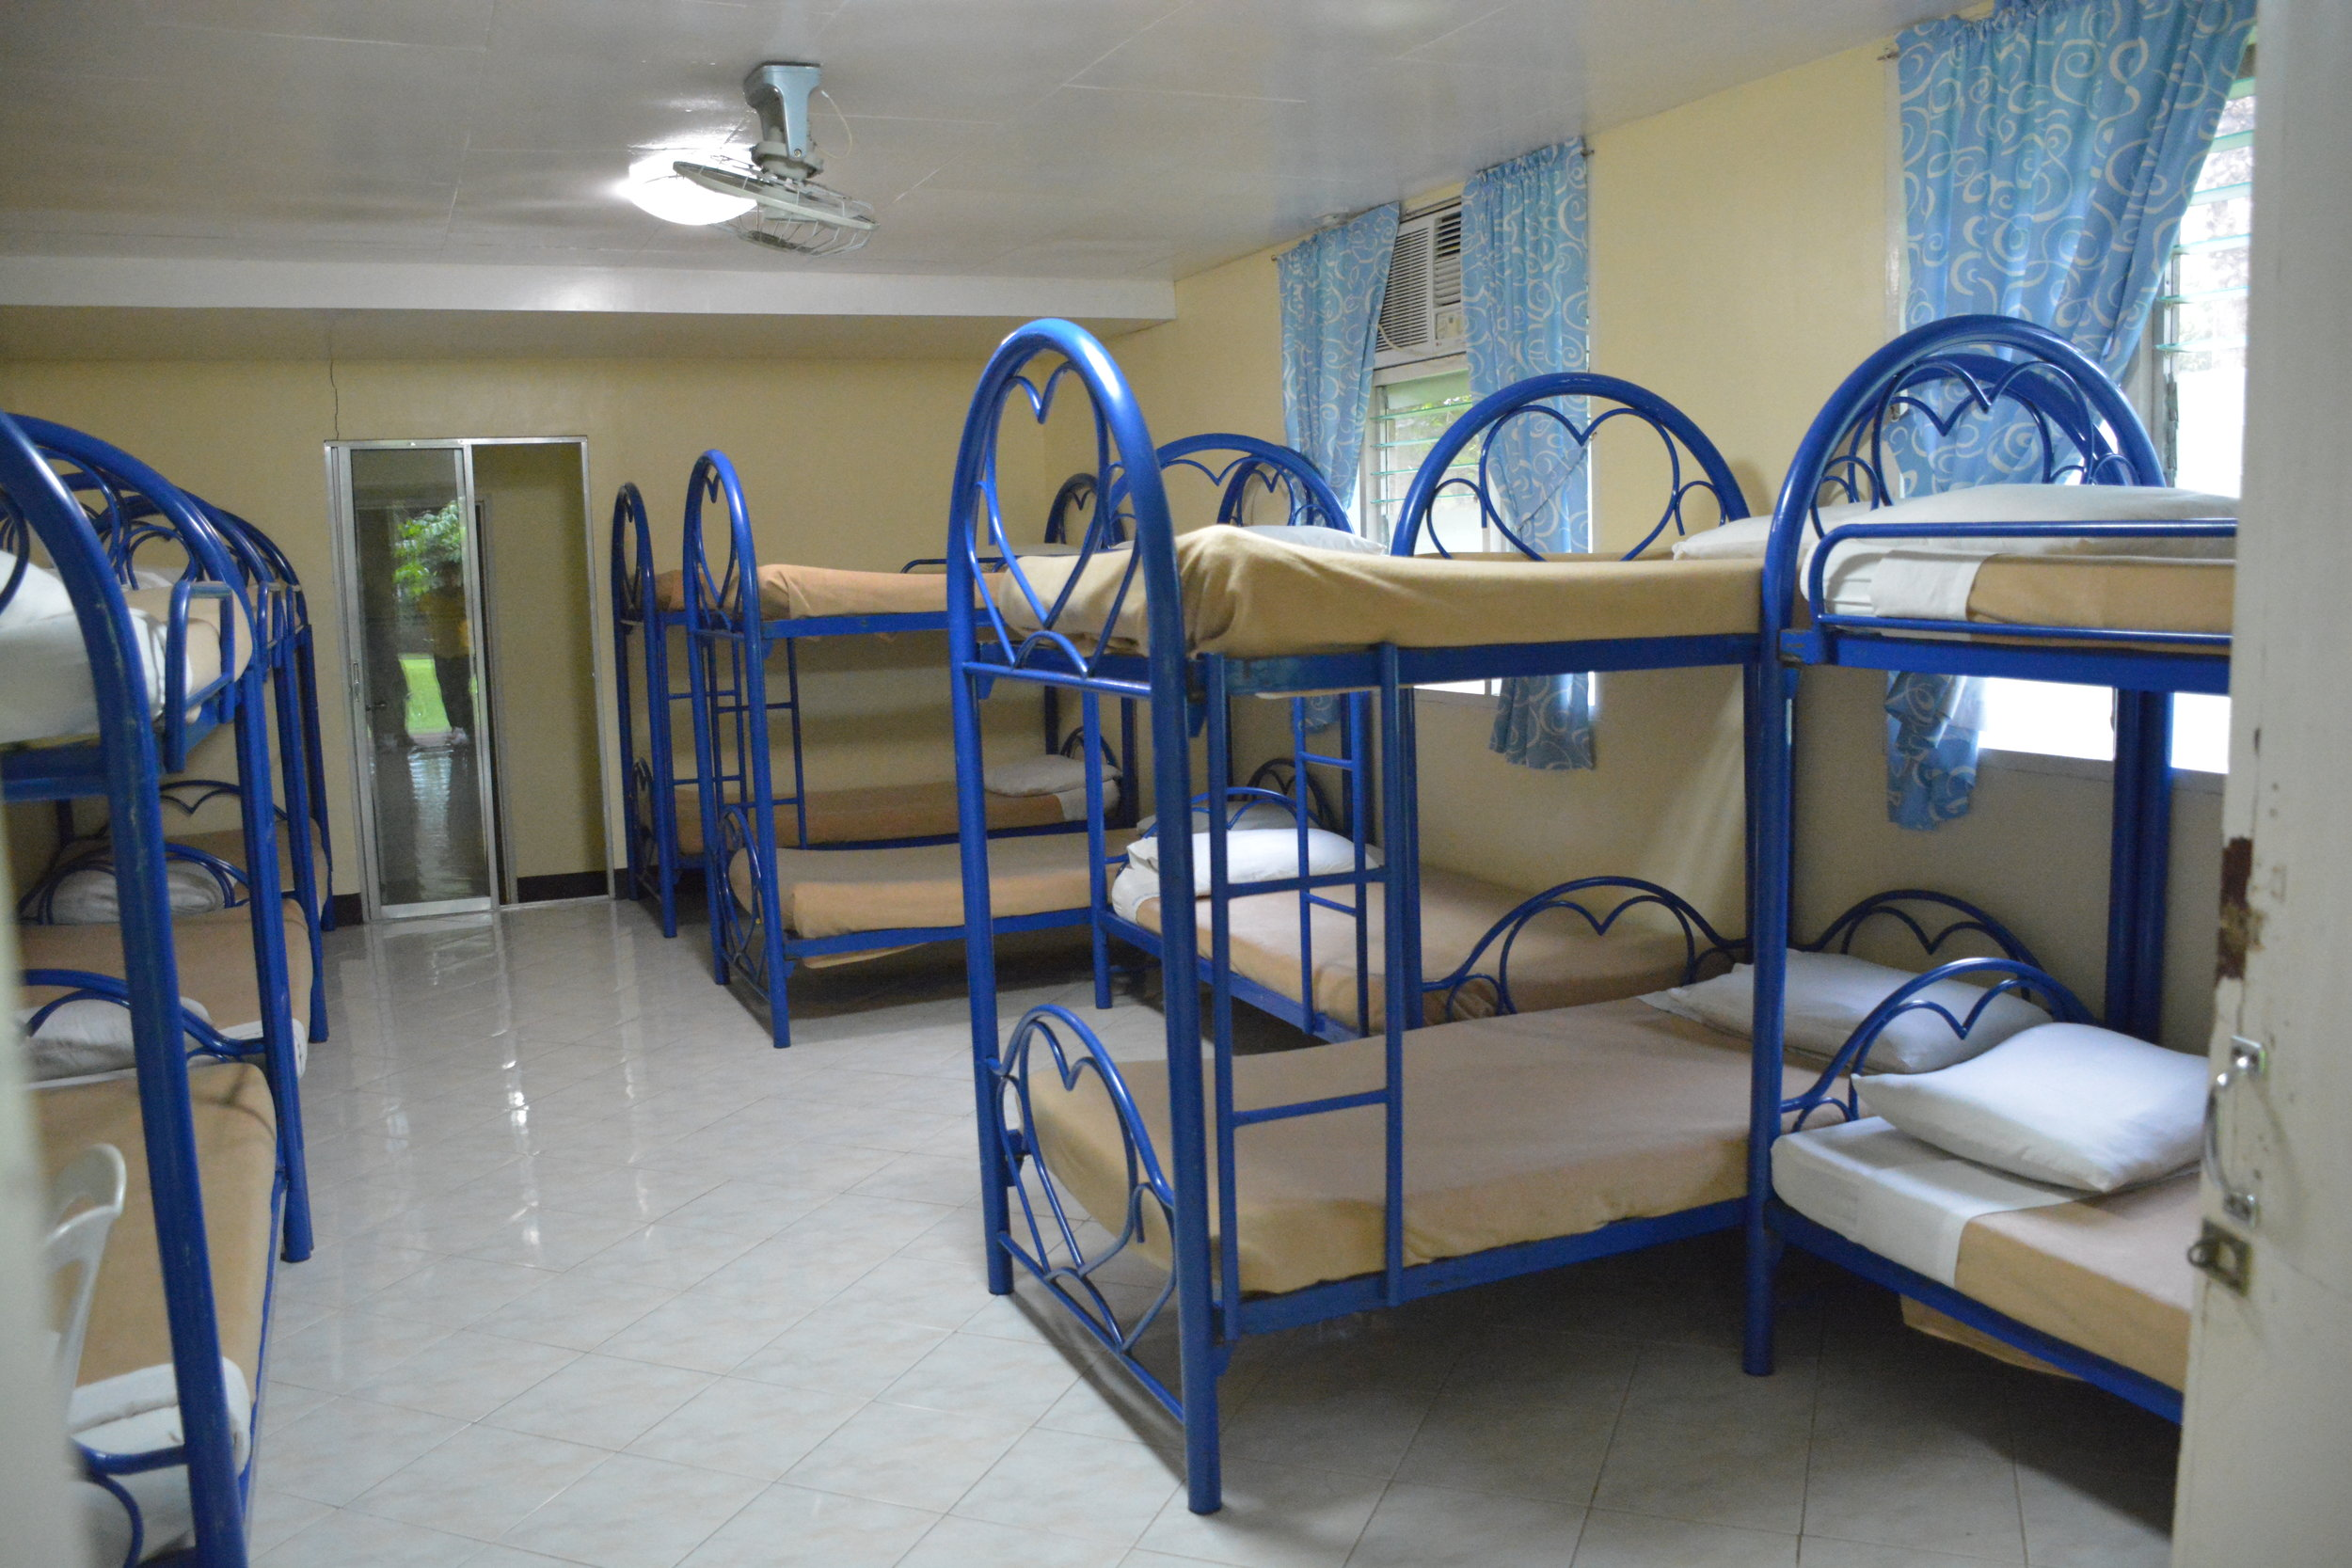 Deluxe Cabin Package PHP 1500 per person.   The accommodations for this package include AC Deluxe Cabins. Each Cabin holds 16 pax. They are assigned based on headcount of the group. Each Cabin has its own bathroom. (rate is adjusted for less than 12 pax in a room) Capacity is 60 pax.